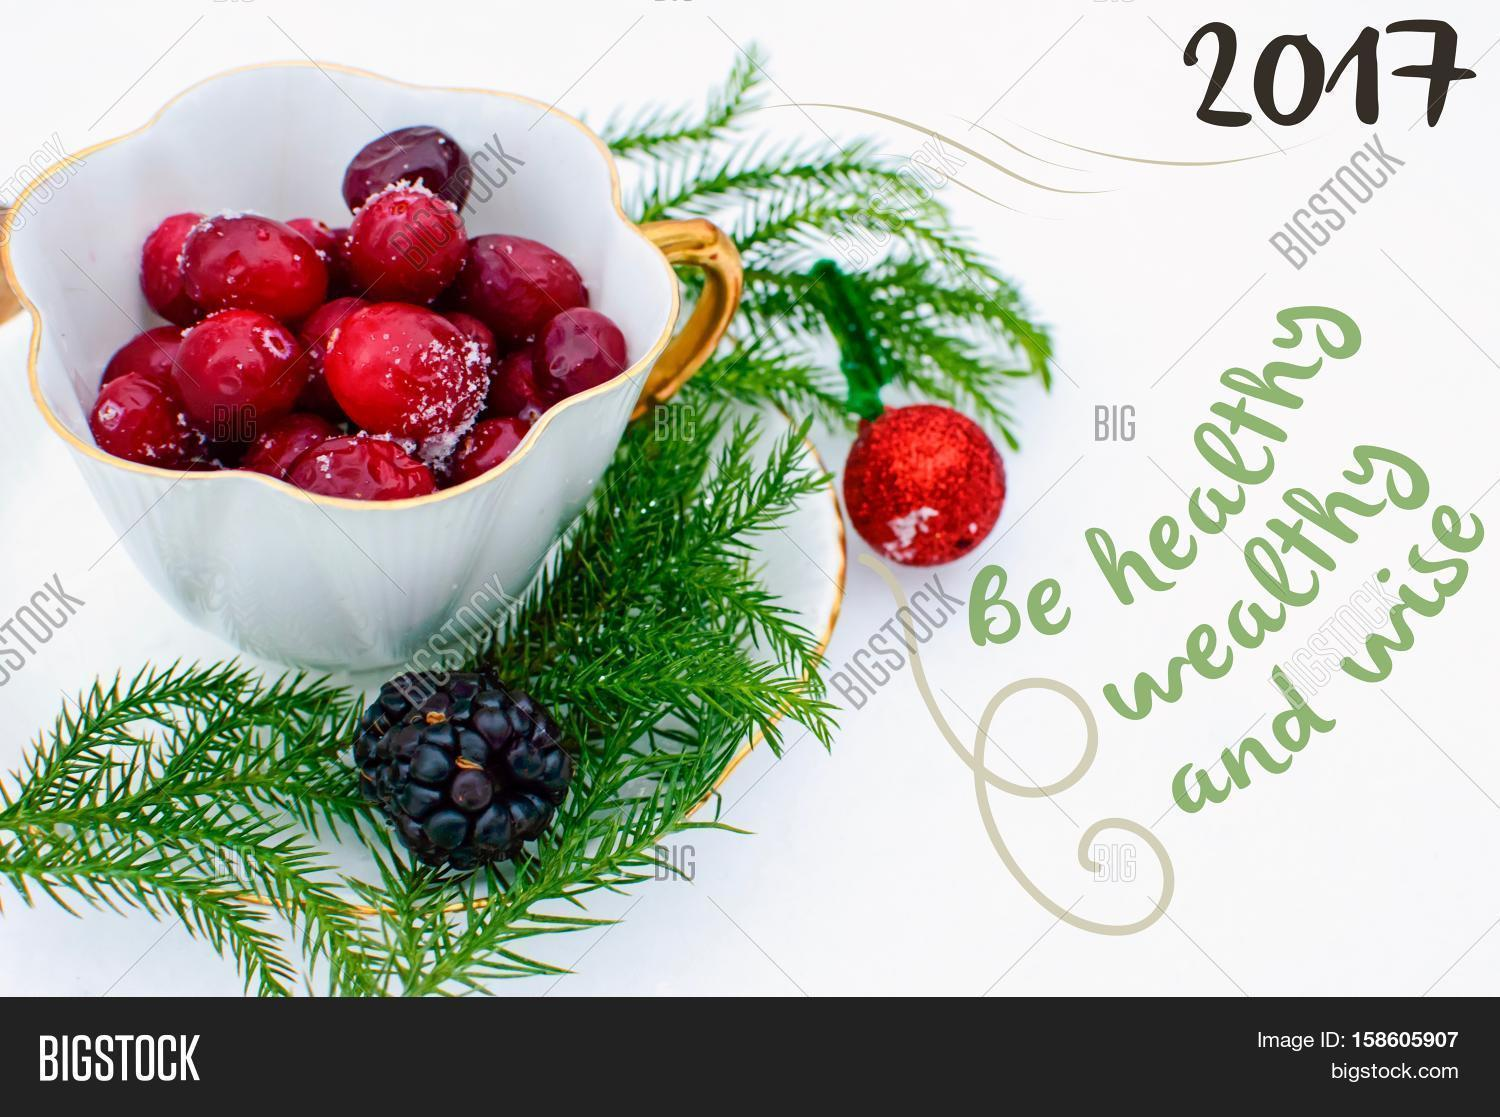 new years wishes 2017 be healthy wealthy and wise resolution holiday greeting card nature background